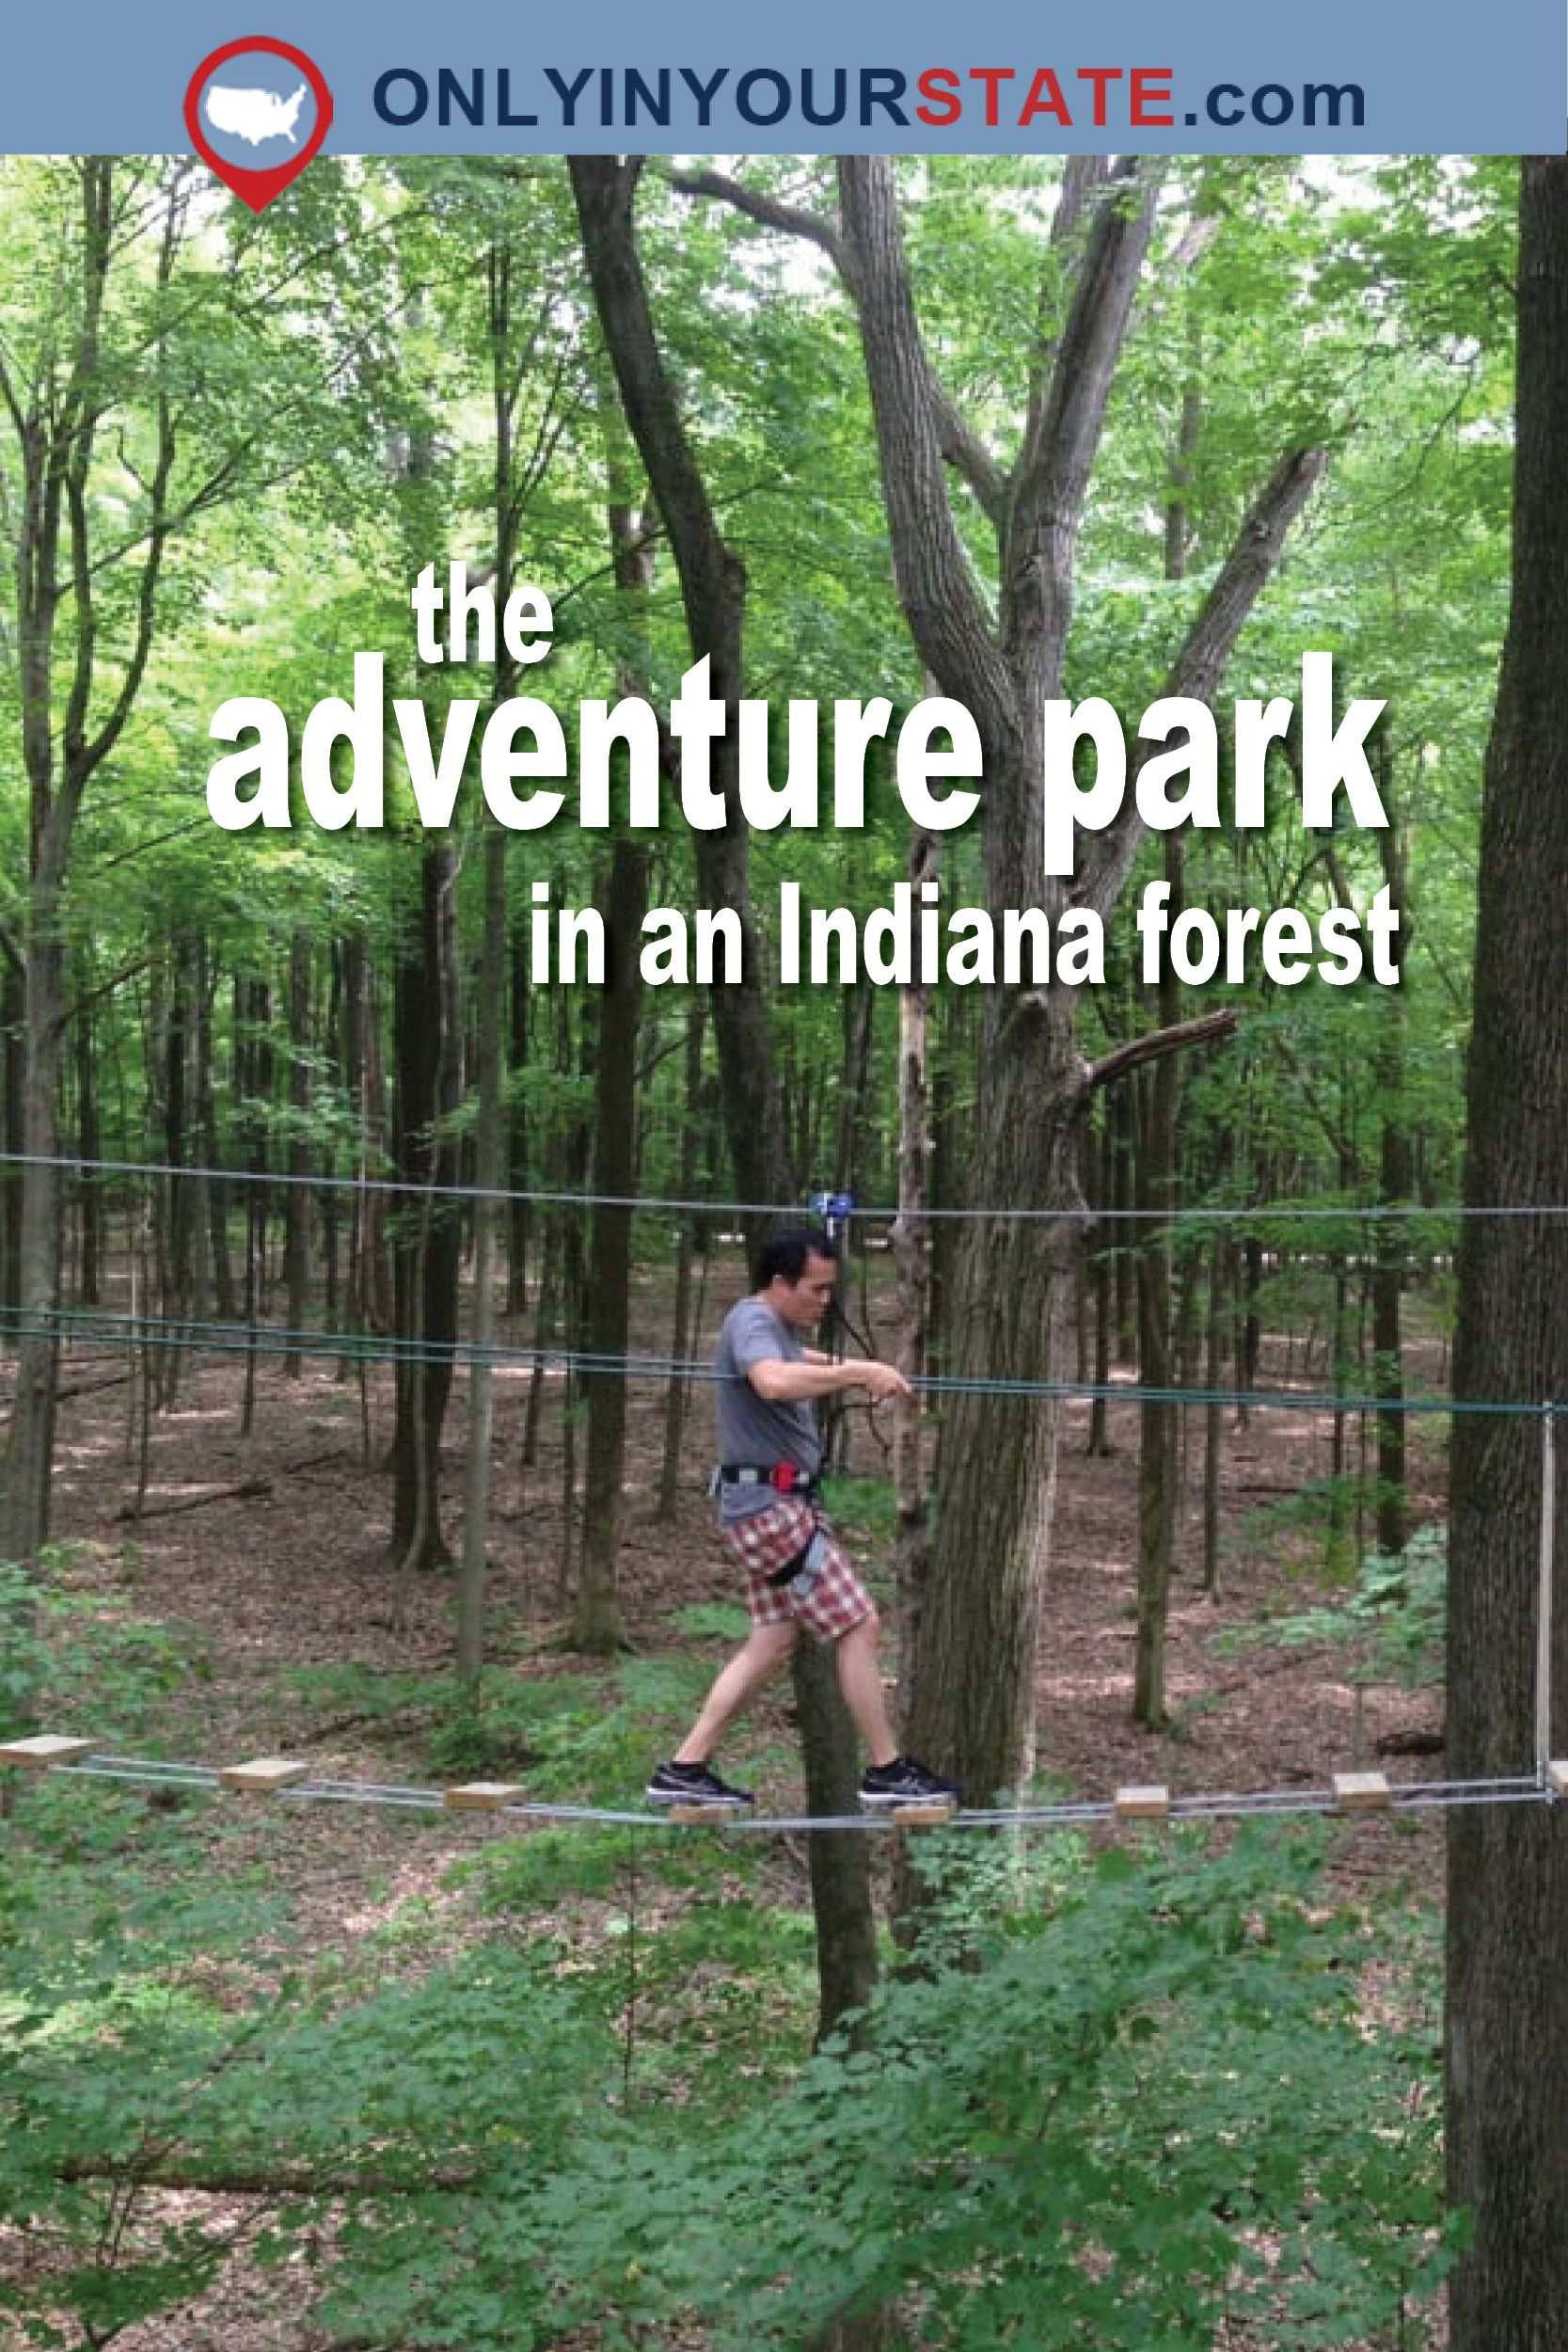 There's An Adventure Park Hiding In The Middle Of An Indiana Forest